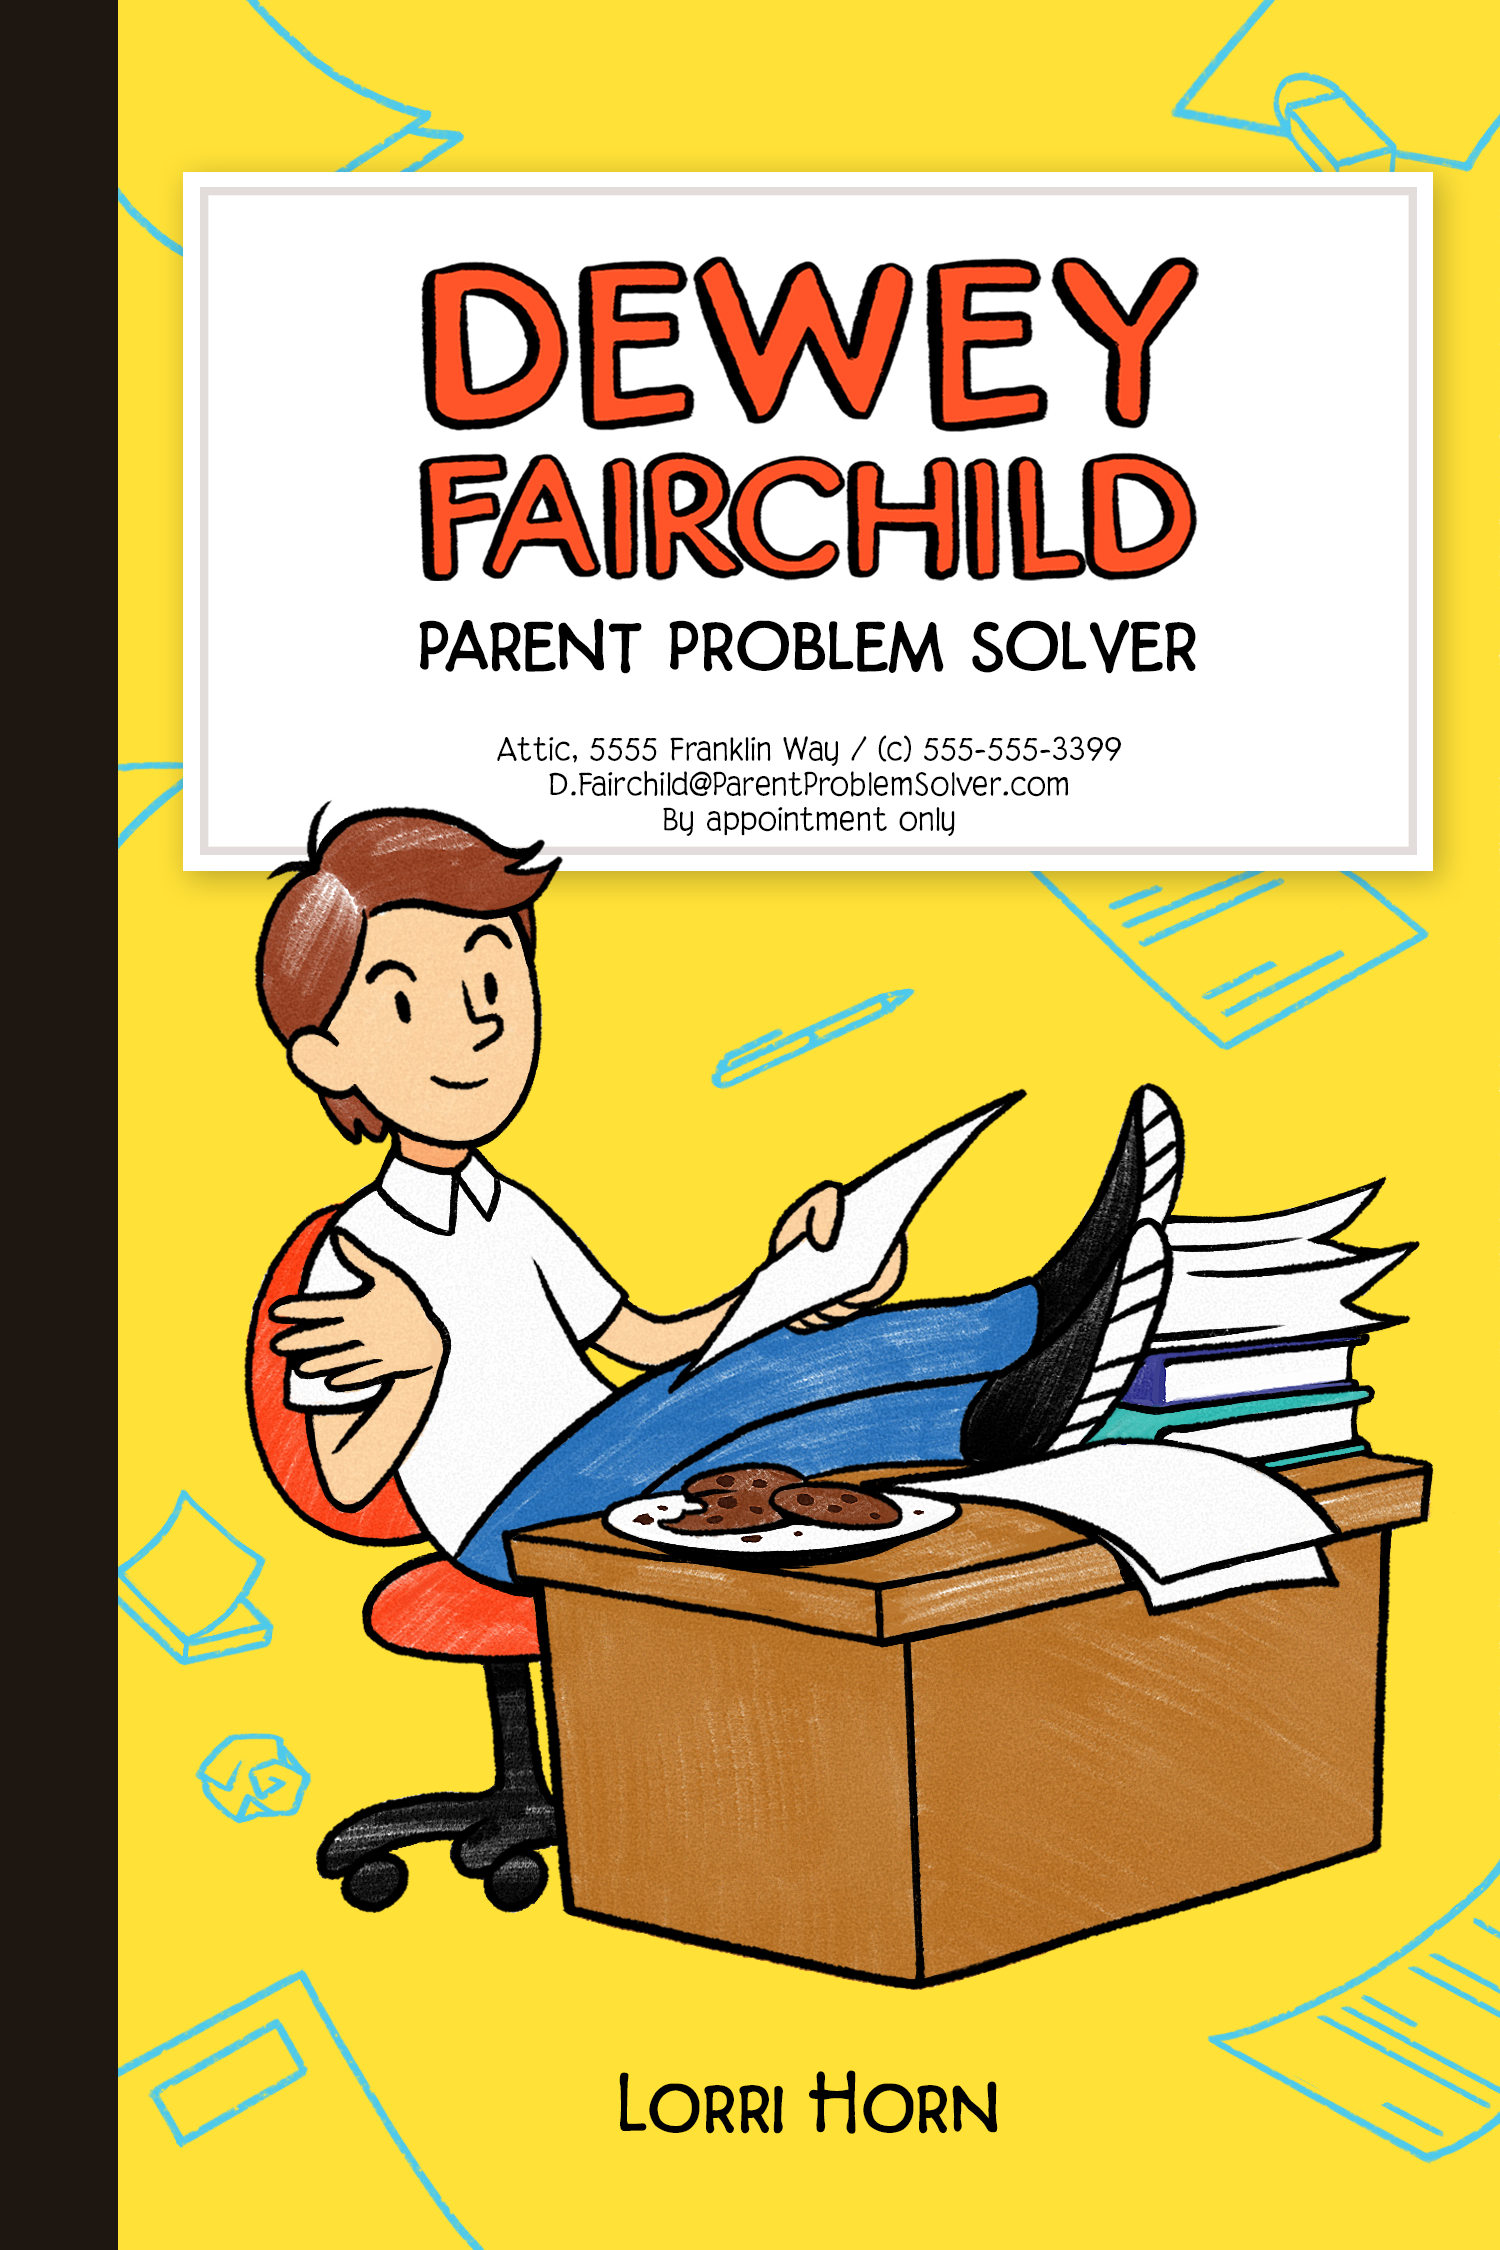 Dewey Fairchild: Parent Problem Solver